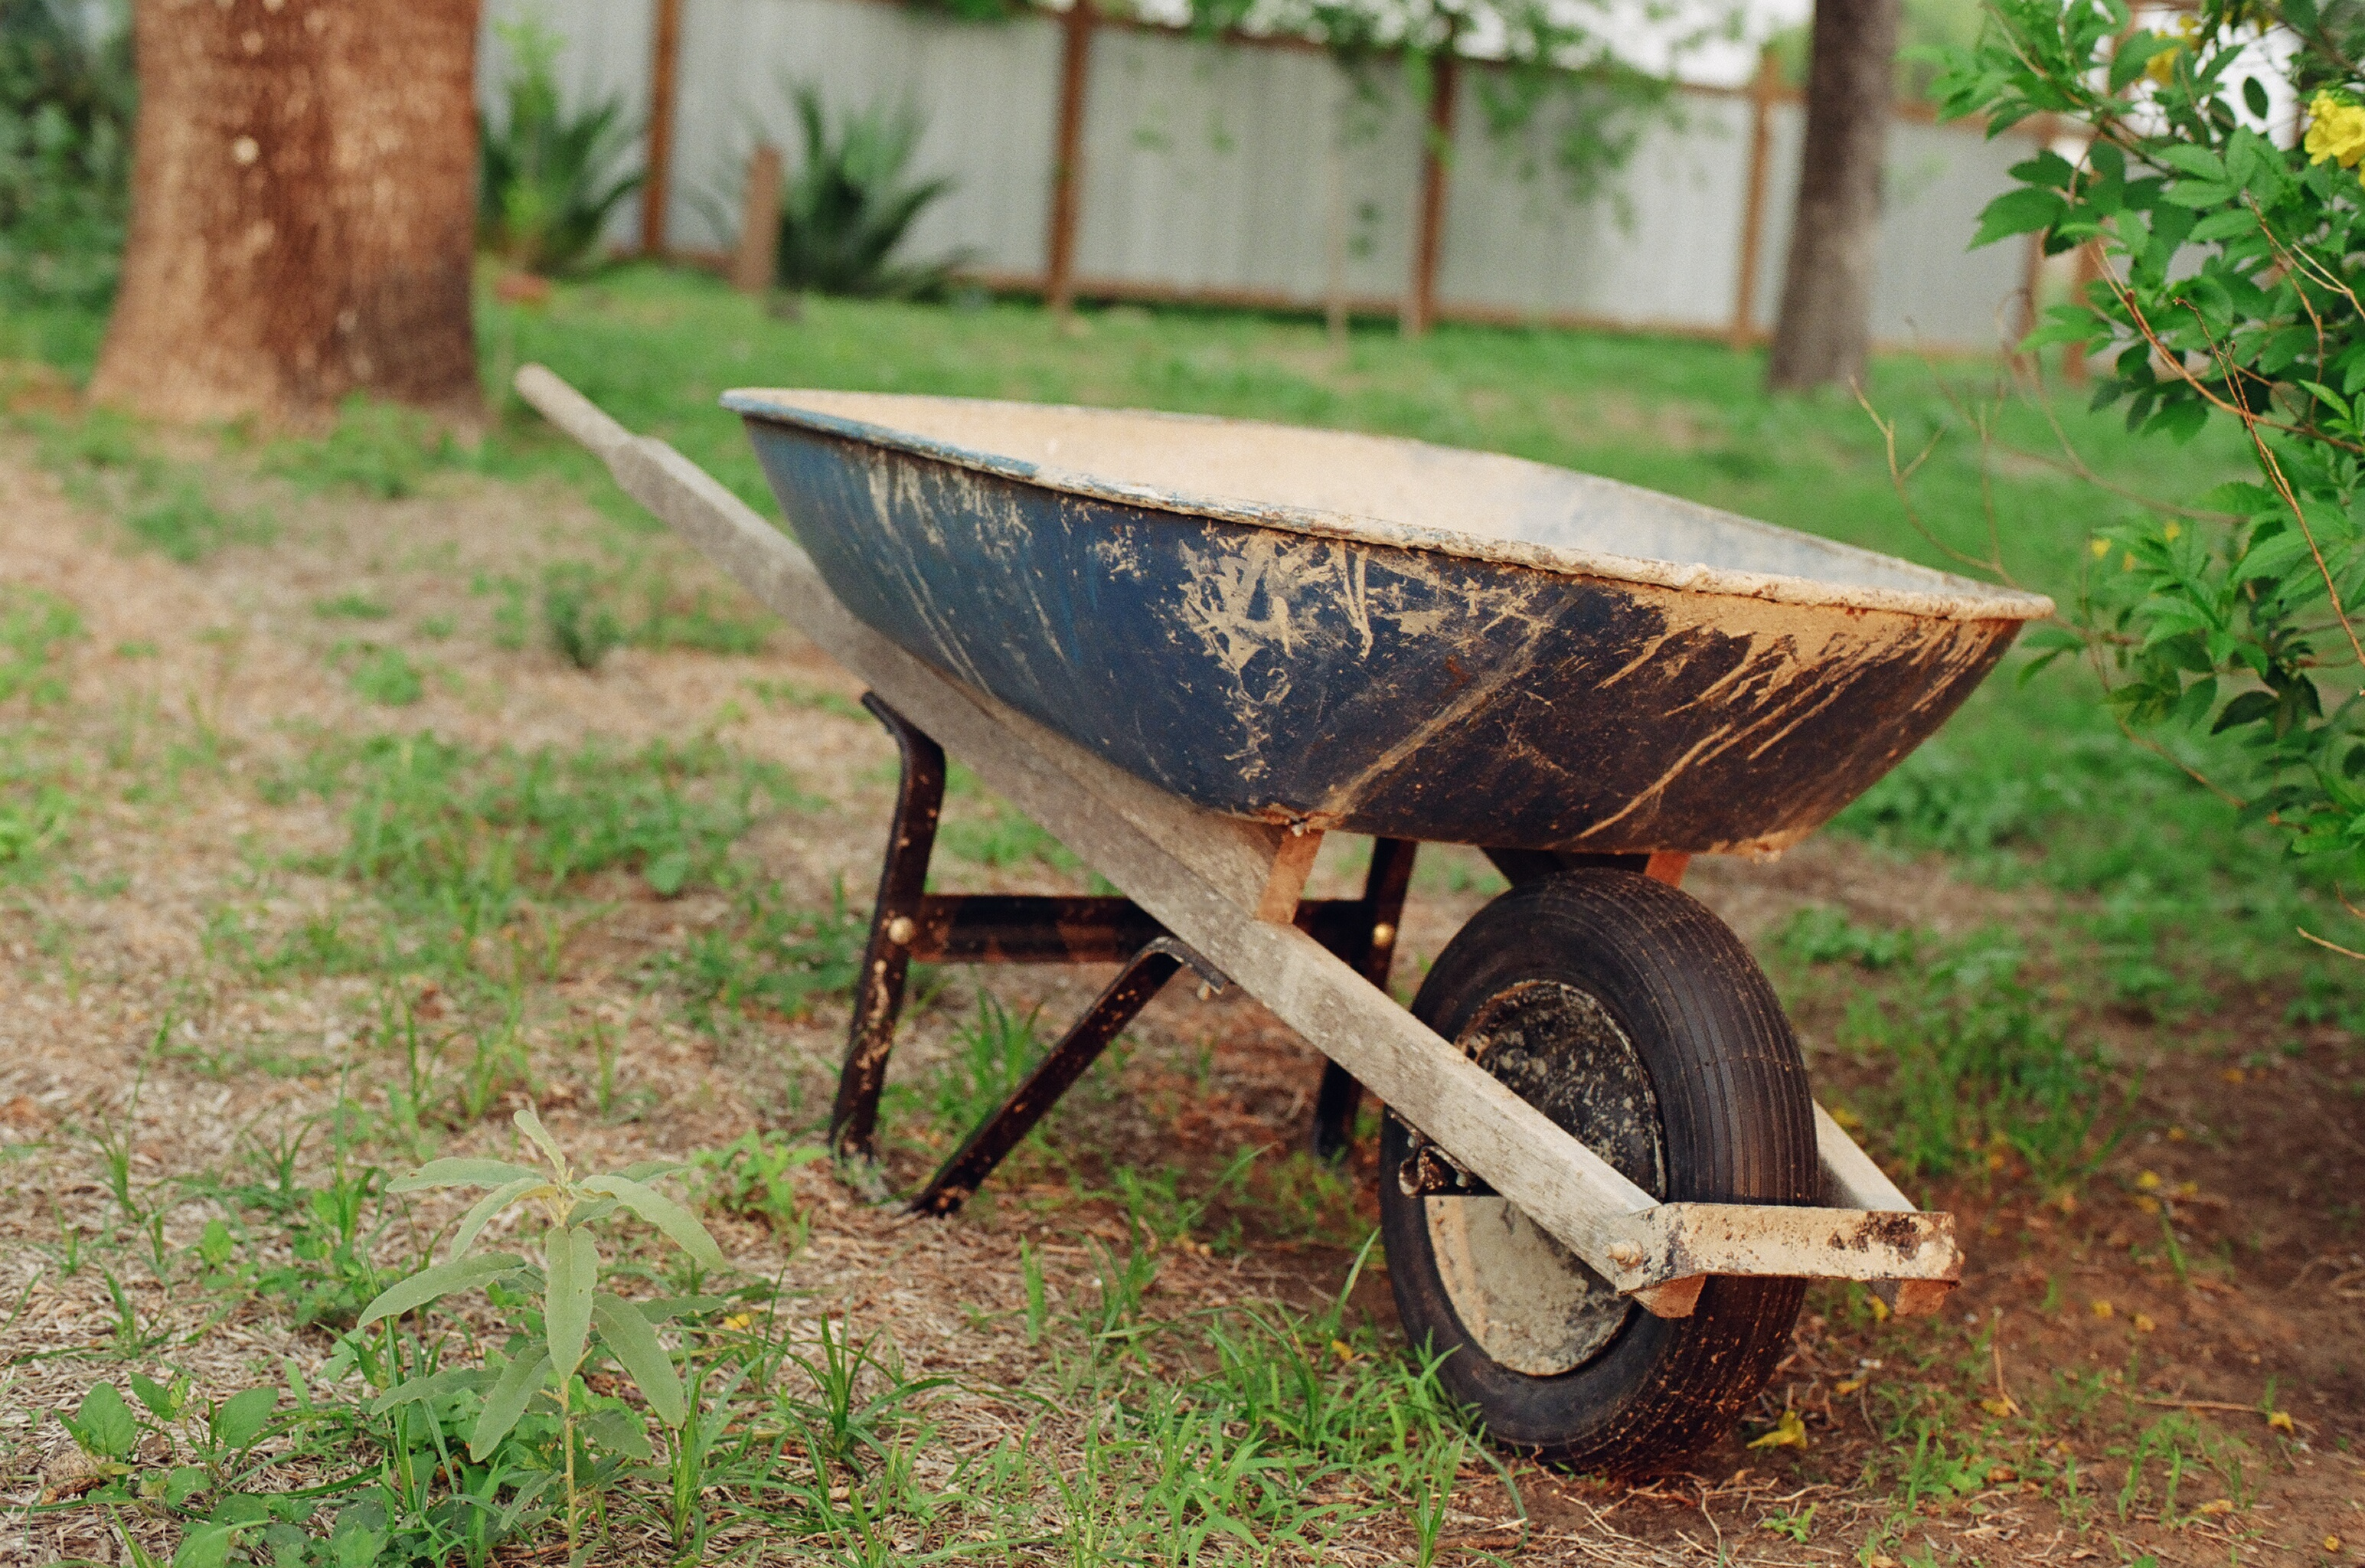 http://upload.wikimedia.org/wikipedia/commons/e/e2/Empty_Wheelbarrow.JPG